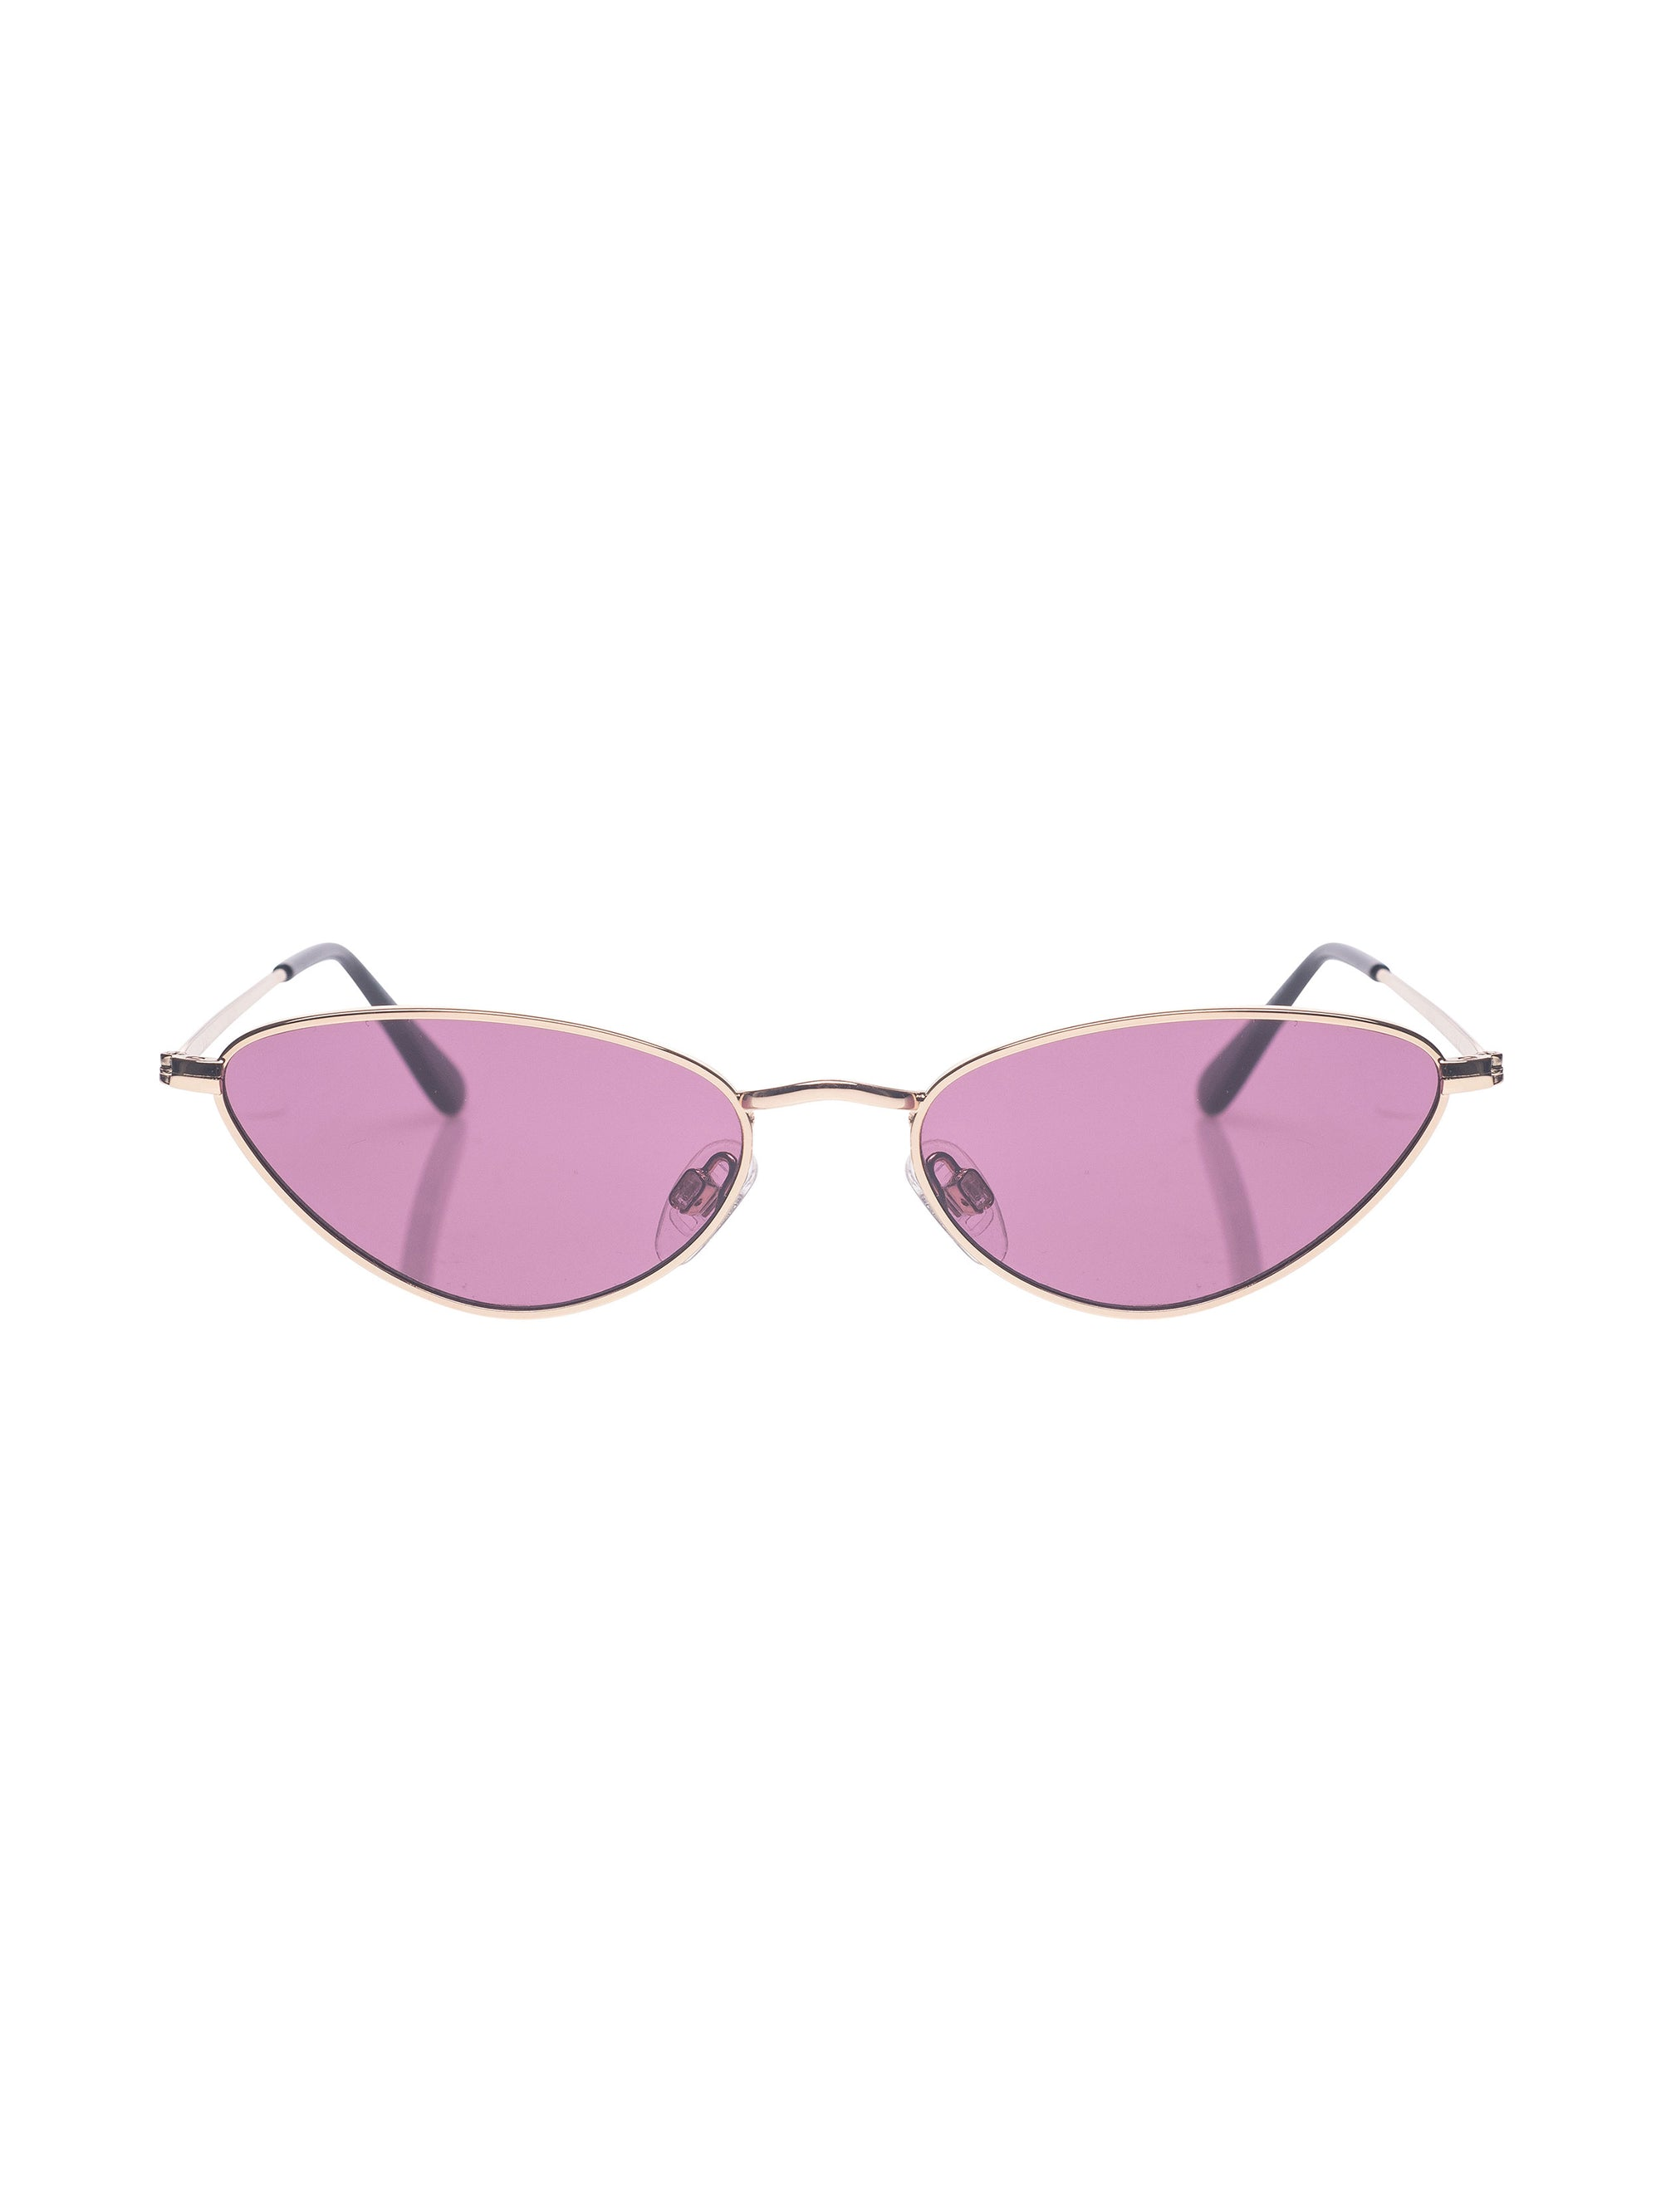 Lentes Carolina Lemke CL1706 04